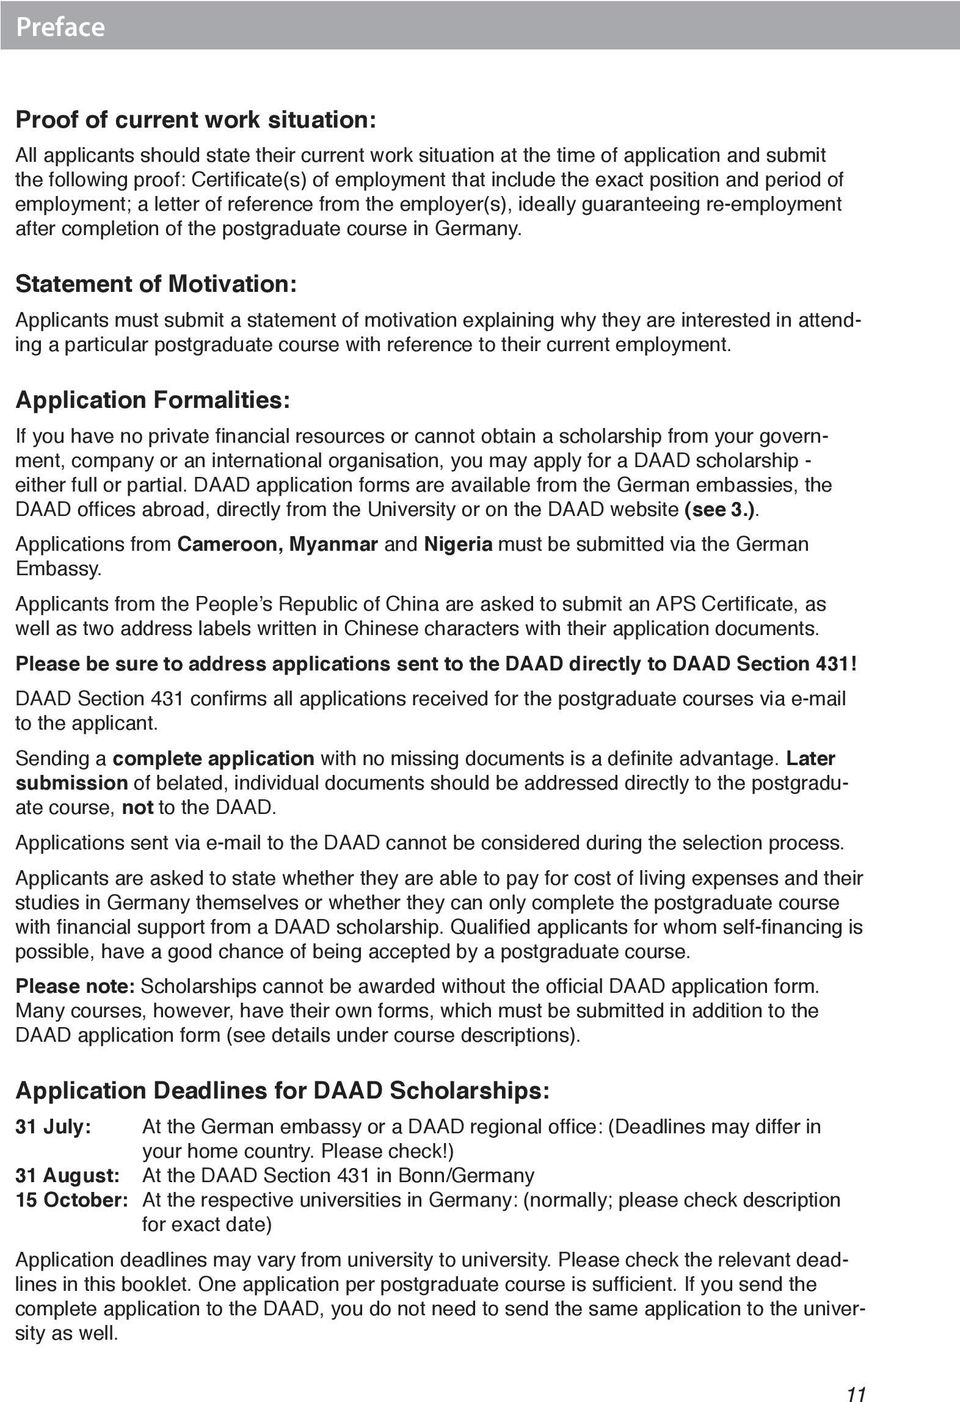 Statement of Motivation: Applicants must submit a statement of motivation explaining why they are interested in attending a particular postgraduate course with reference to their current employment.